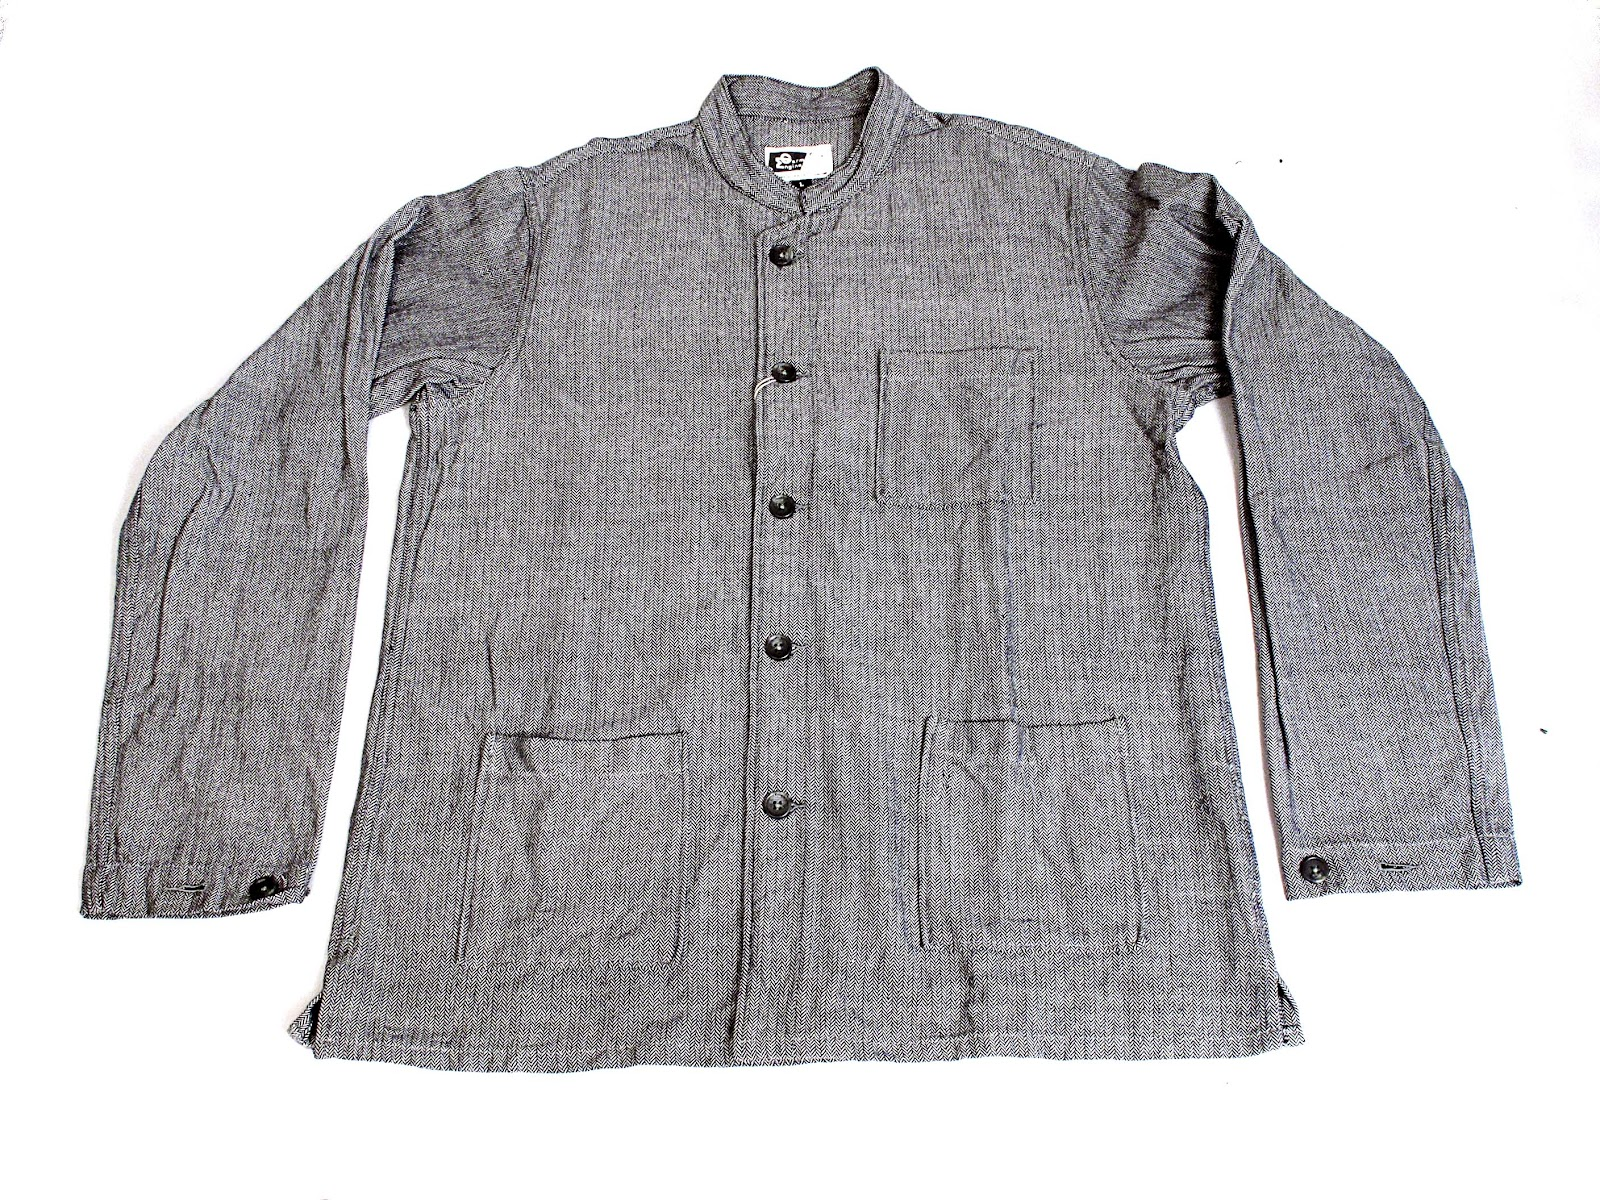 Nepenthes New York: 「IN STOCK」Engineered Garments FW12 Dayton Shirt